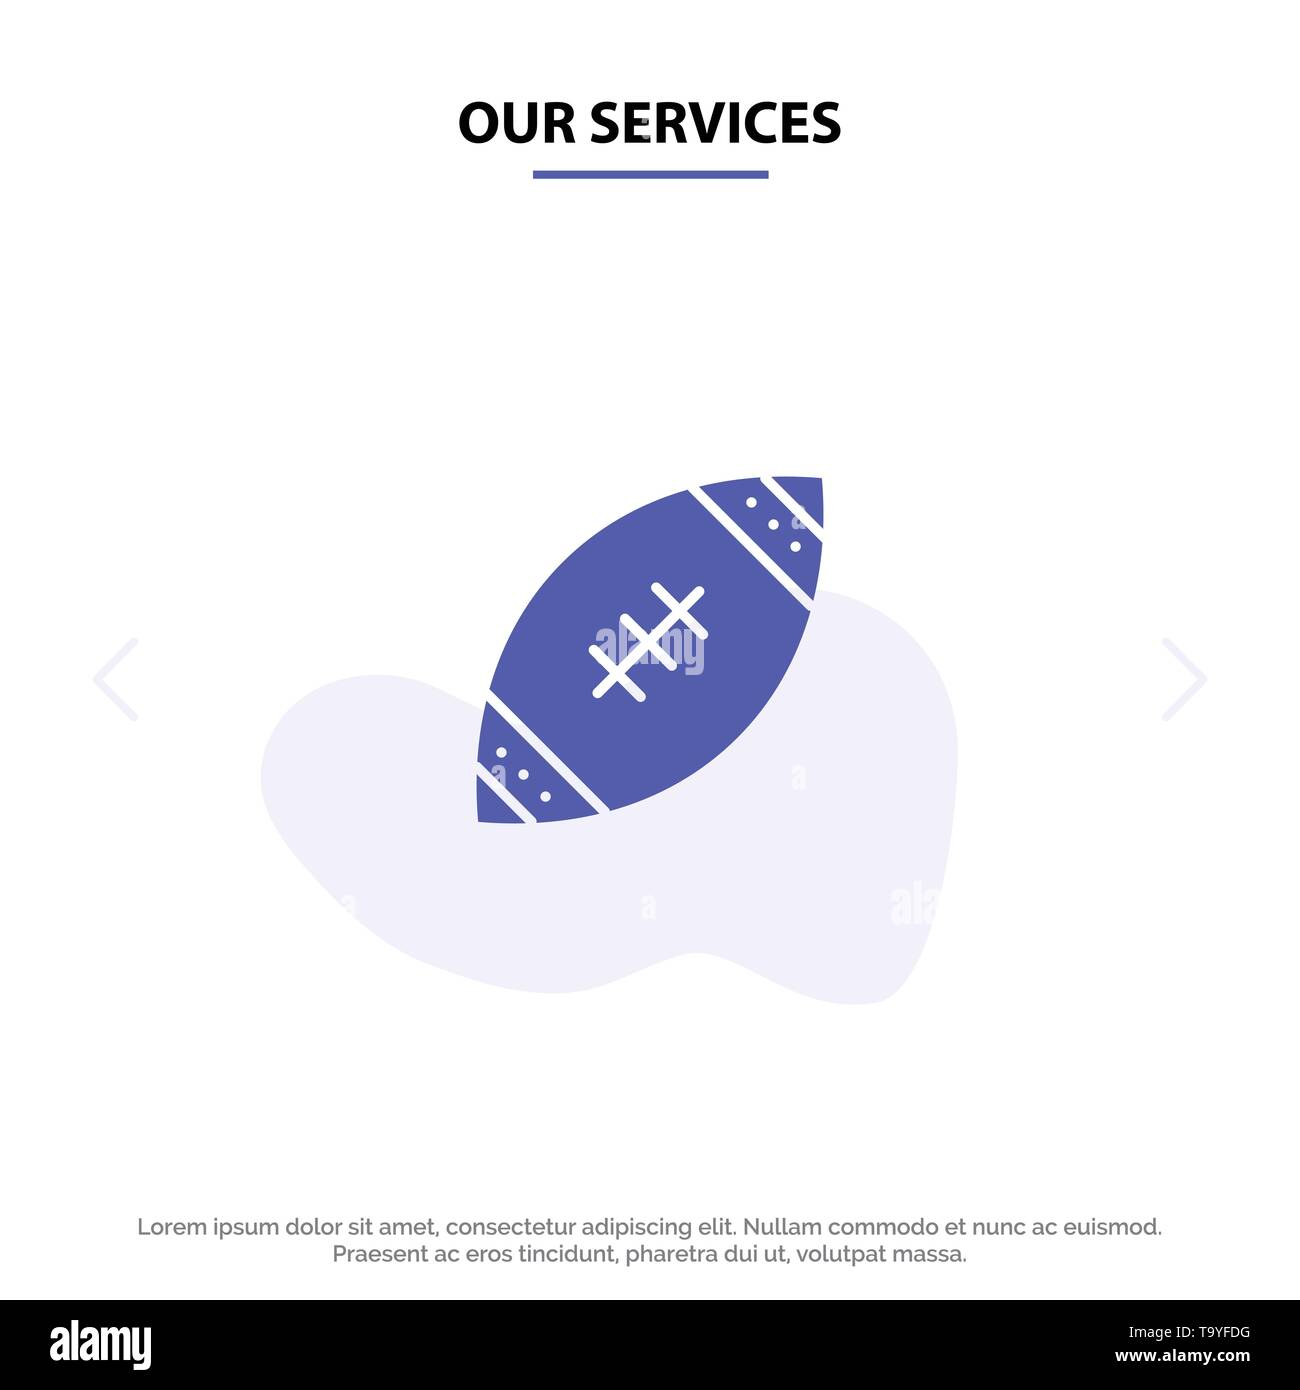 Our Services American, Ball, Football, Nfl, Rugby Solid Glyph Icon Web card Template - Stock Image